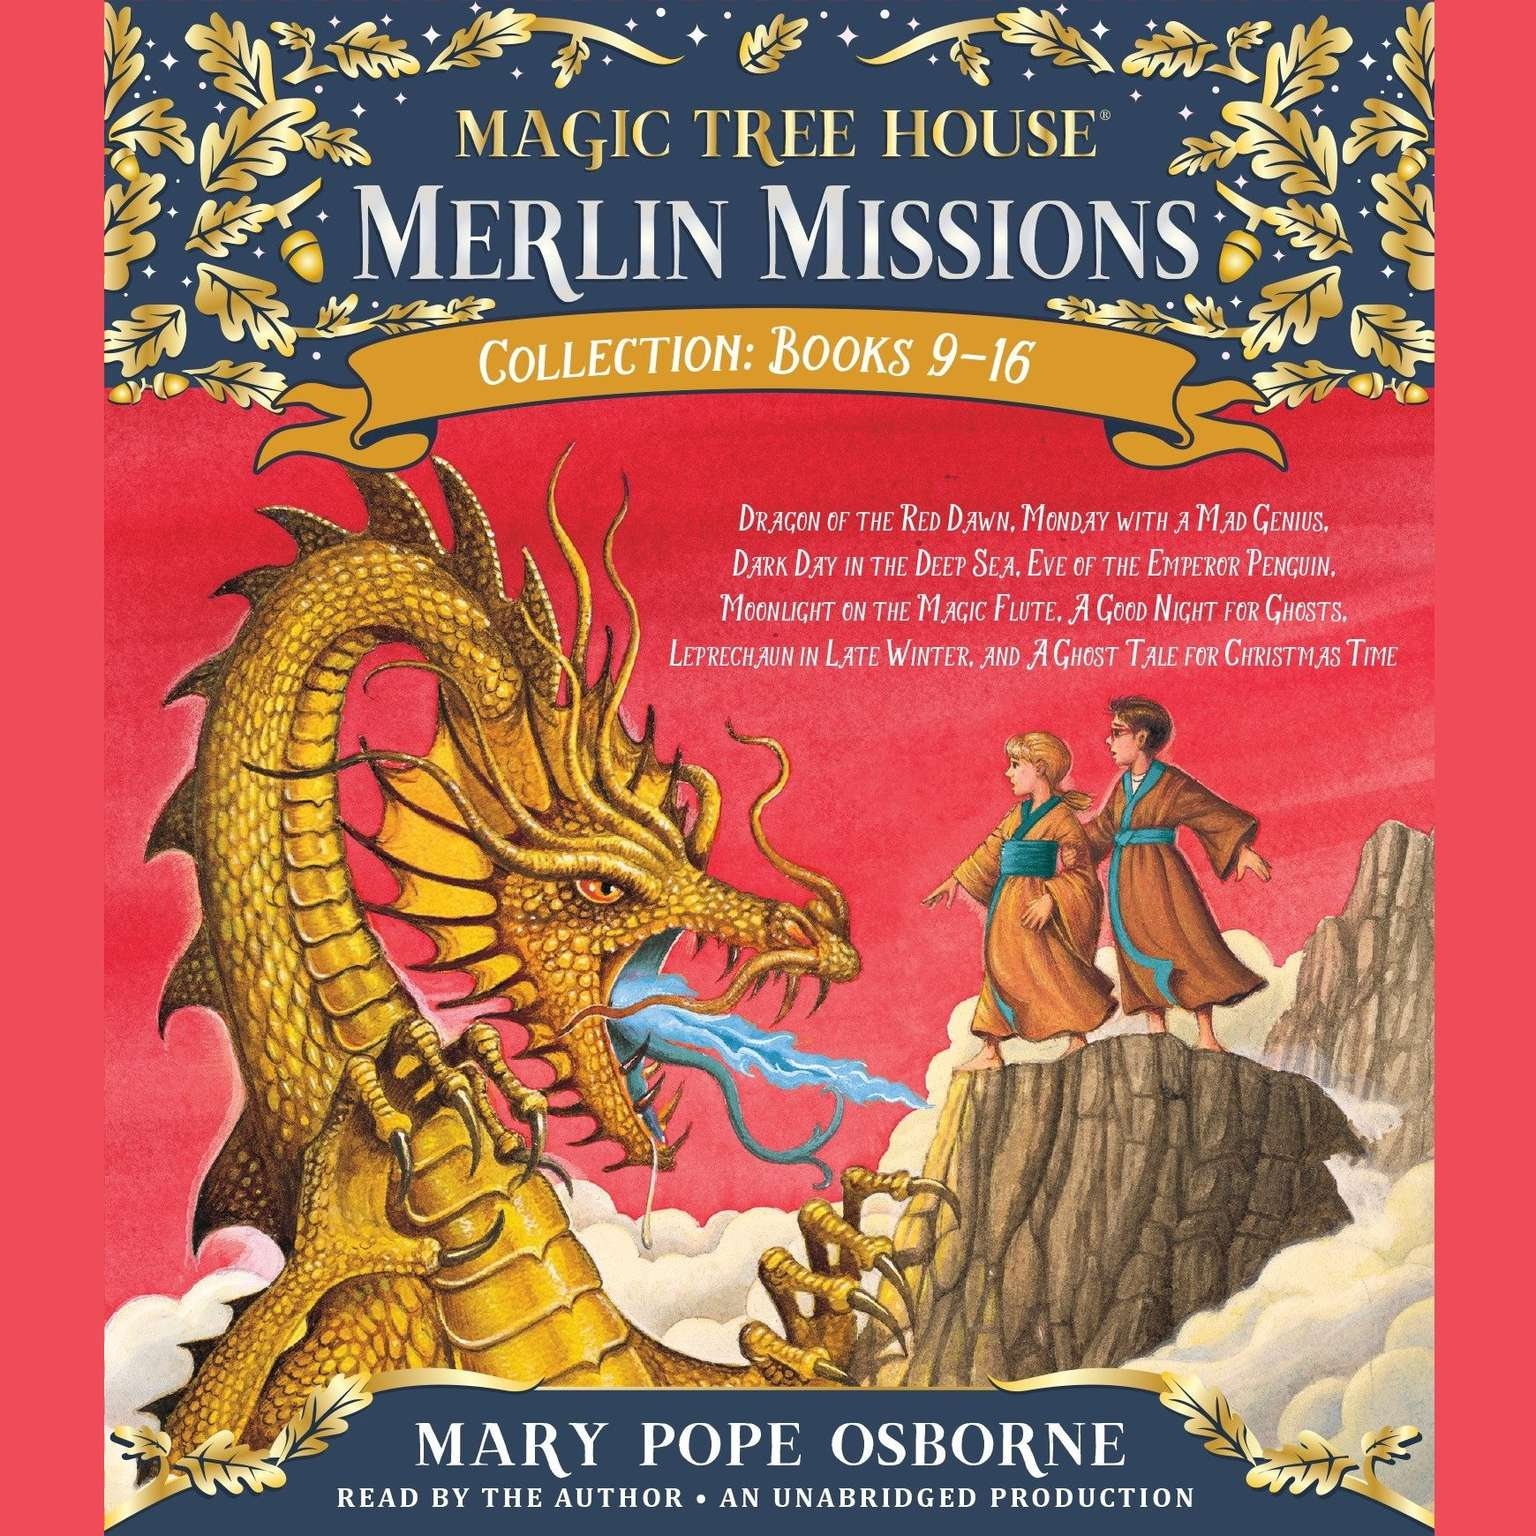 Printable Merlin Missions Collection: Books 9-16: Dragon of the Red Dawn; Monday with a Mad Genius; Dark Day in the Deep Sea; Eve of the Emperor Penguin; and more Audiobook Cover Art